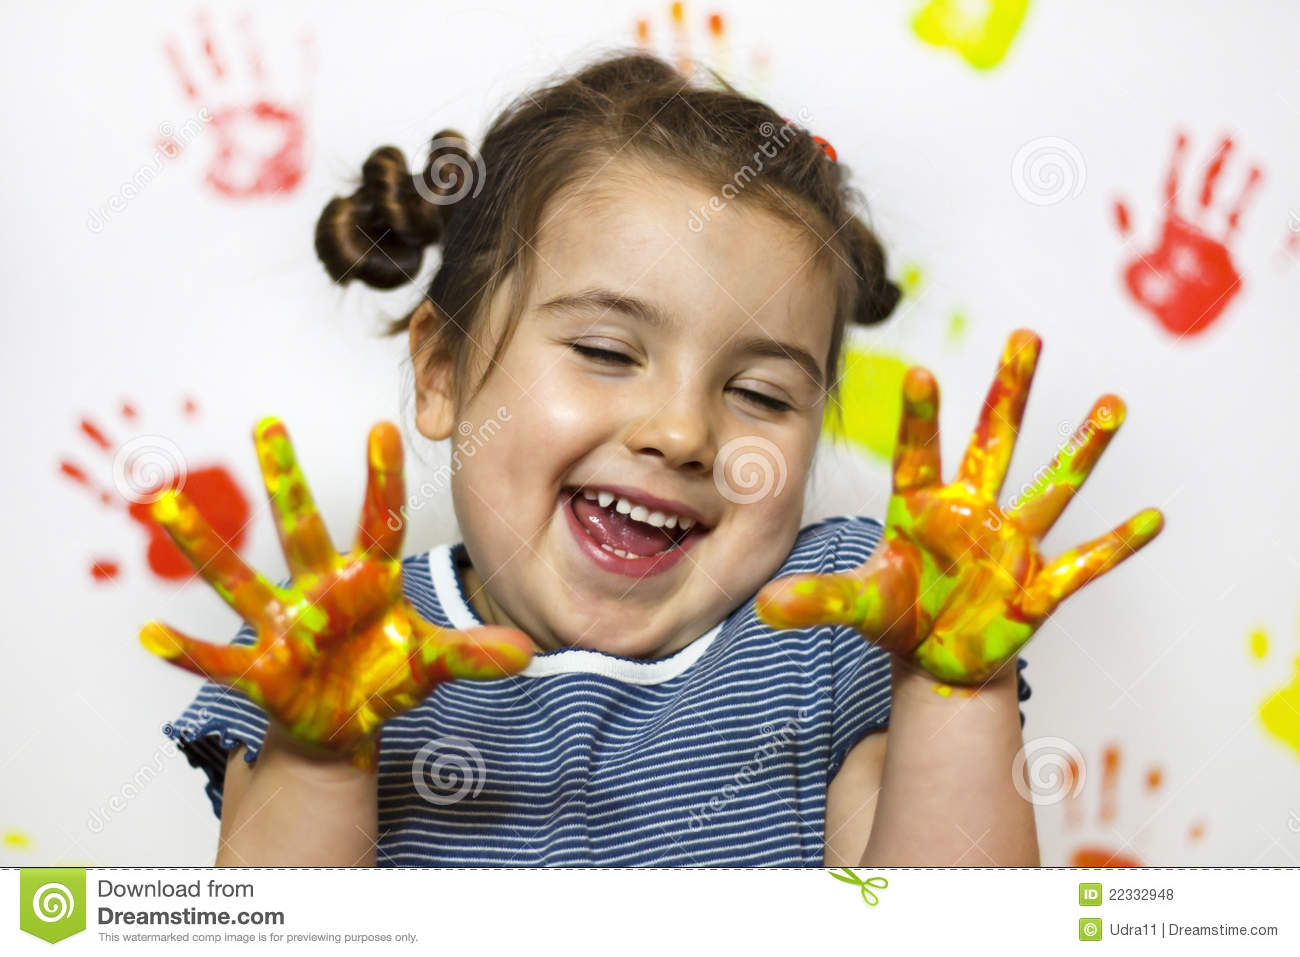 Painting is fun for kid